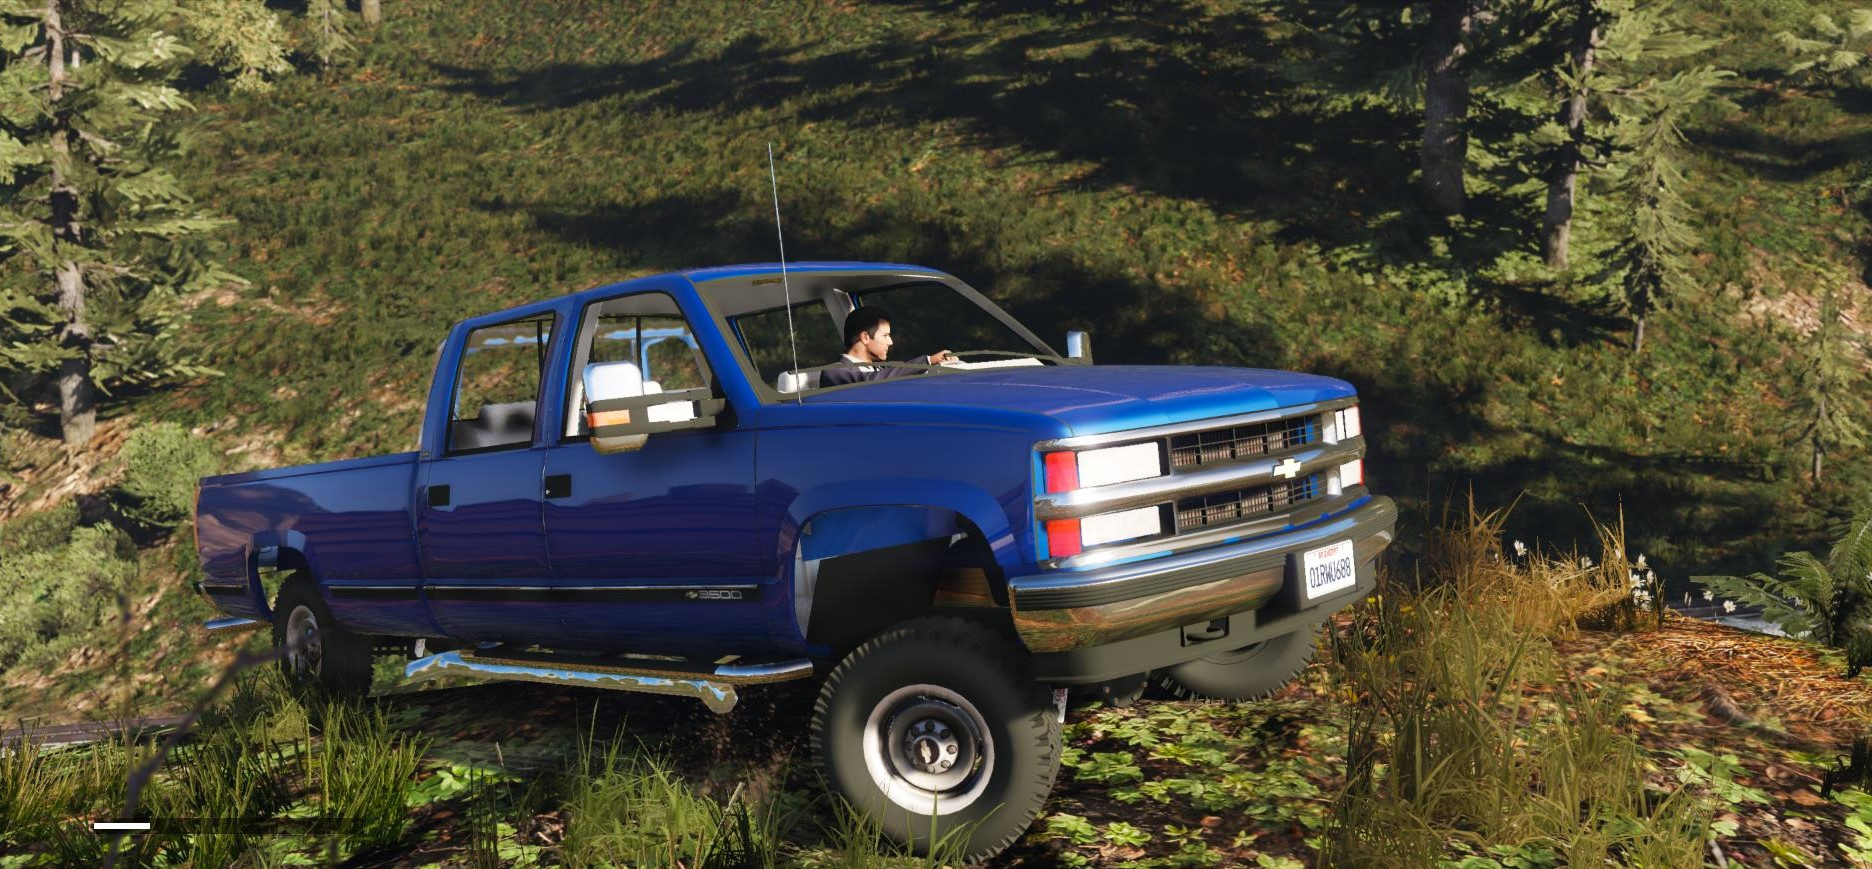 All Chevy 99 chevy 3500 : Chevrolet Silverado 3500 LS Crew Cab 4x4 1999 [Add-On | Replace ...